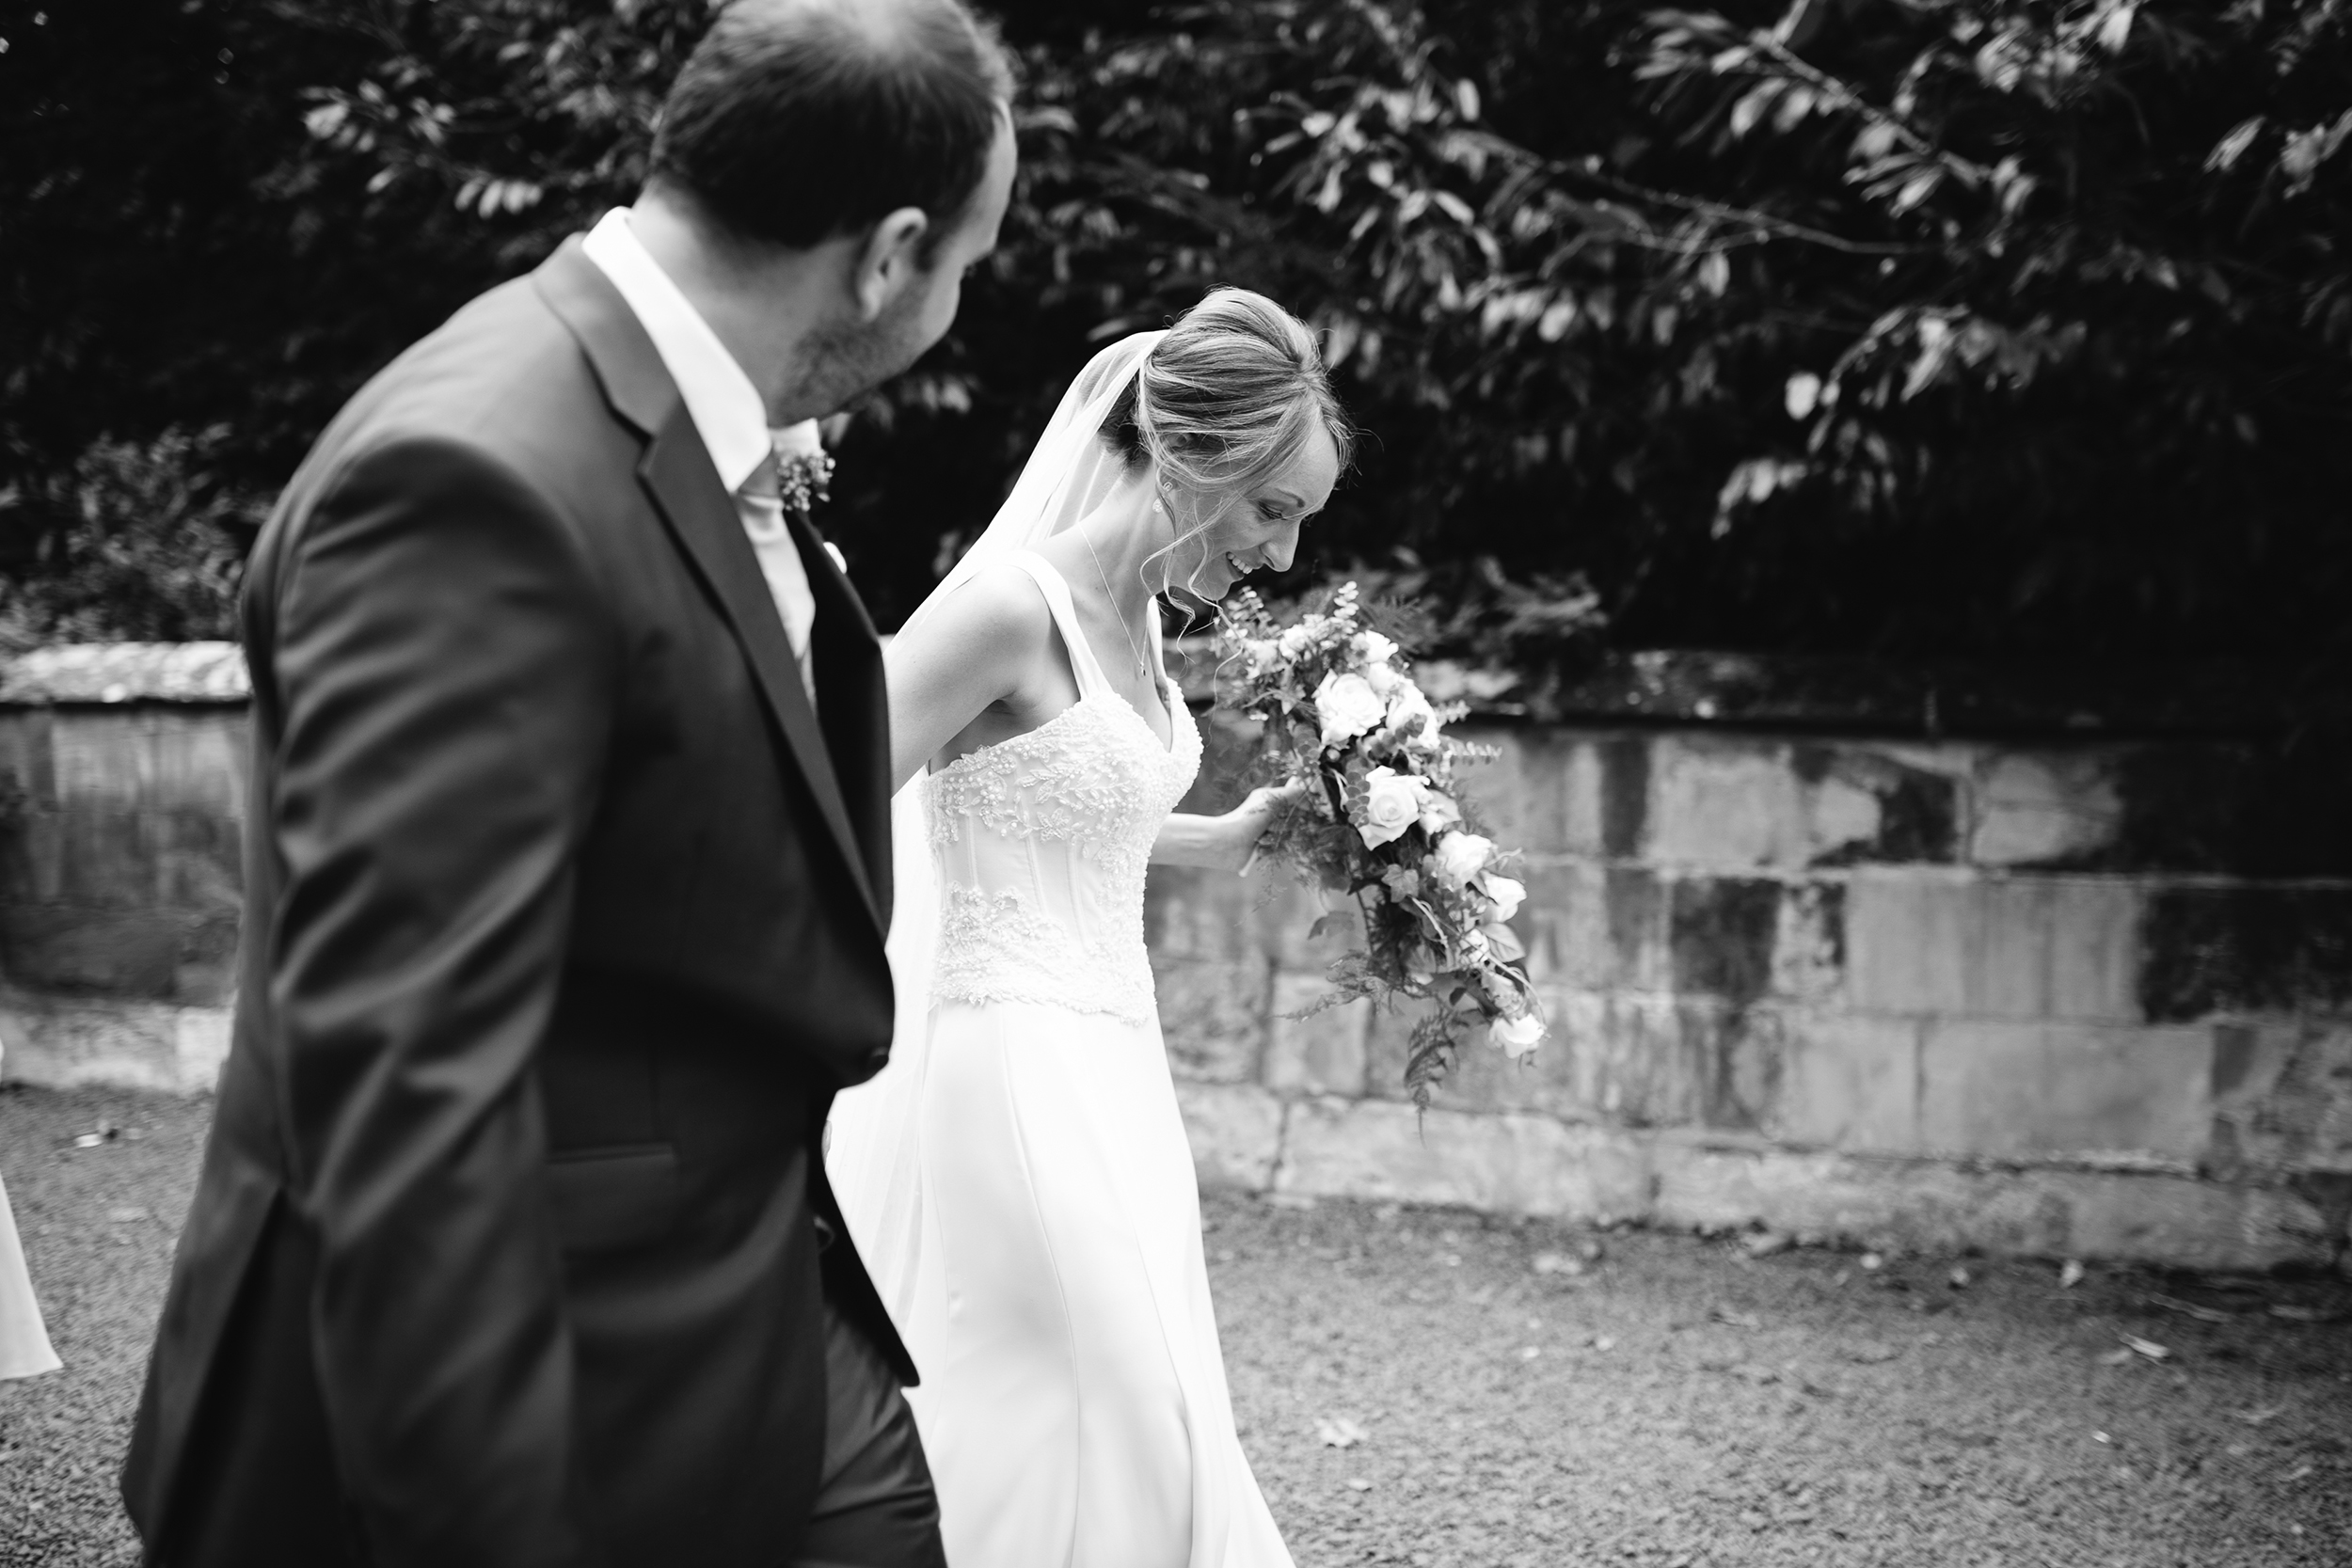 JAMES + NICOLA // MARQUEE AT HOME WEDDING